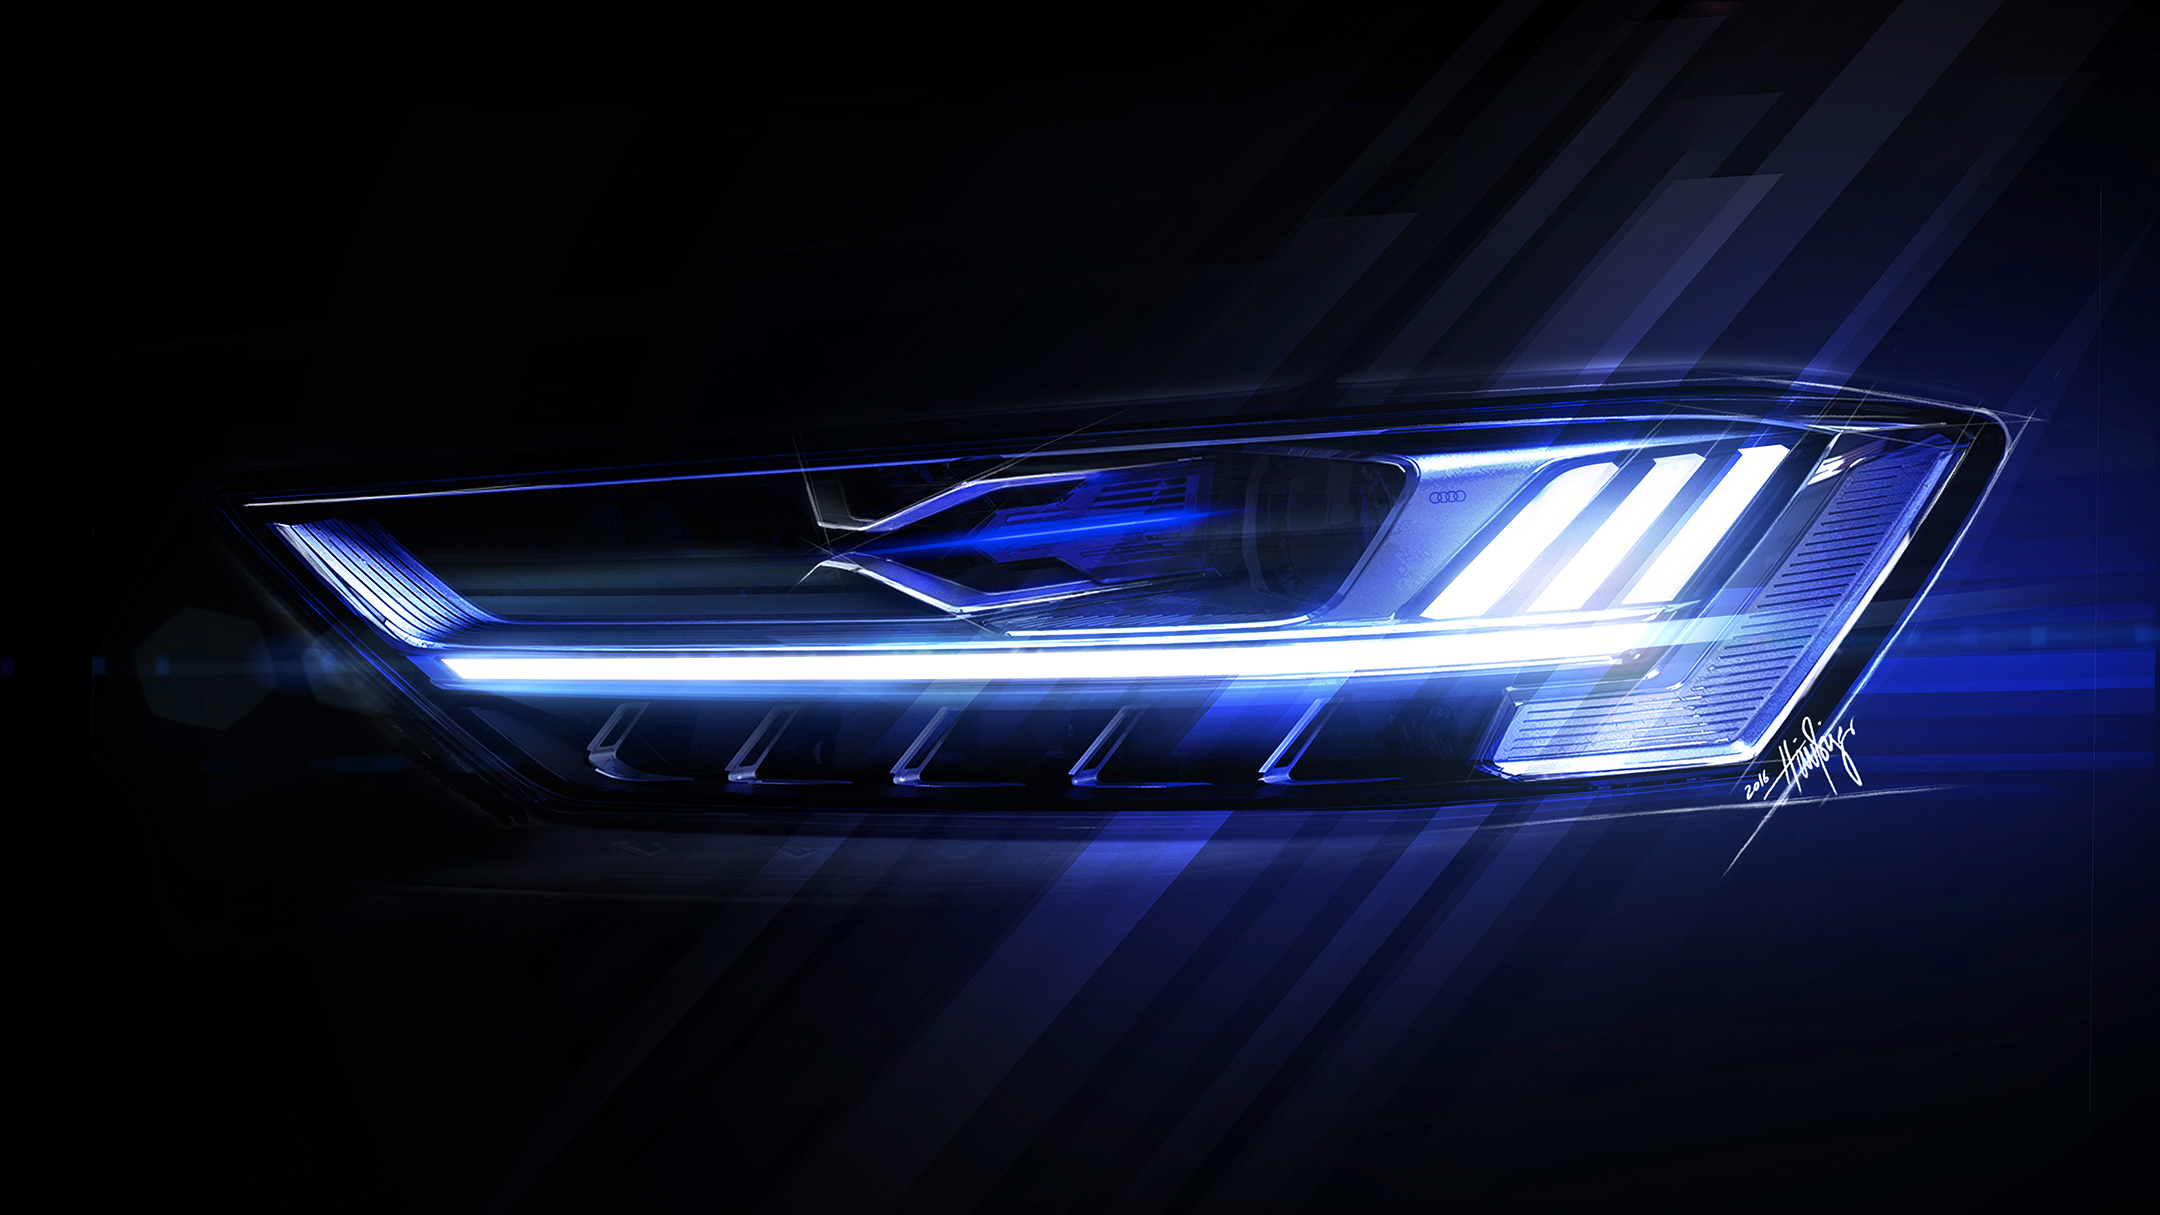 Audi A8 - 2017 - sketch - front light